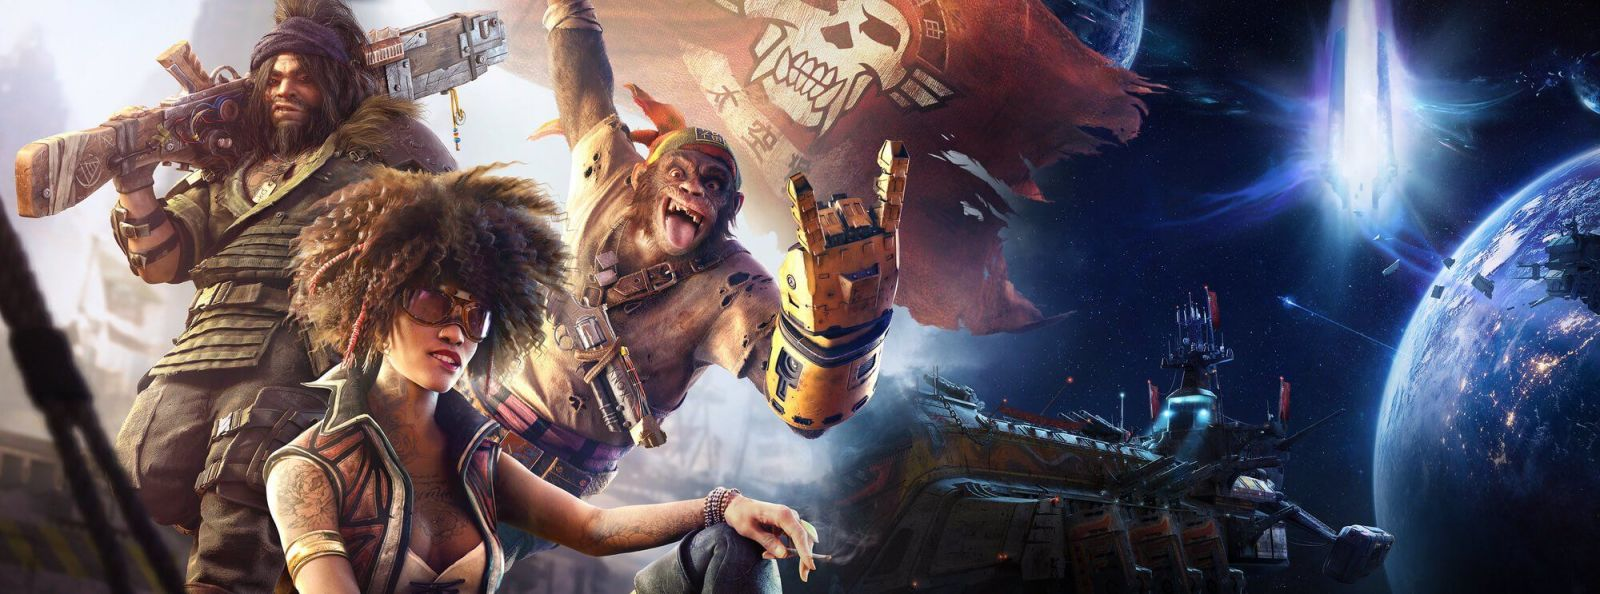 Beyond Good And Evil 2: Everything You Need To Know